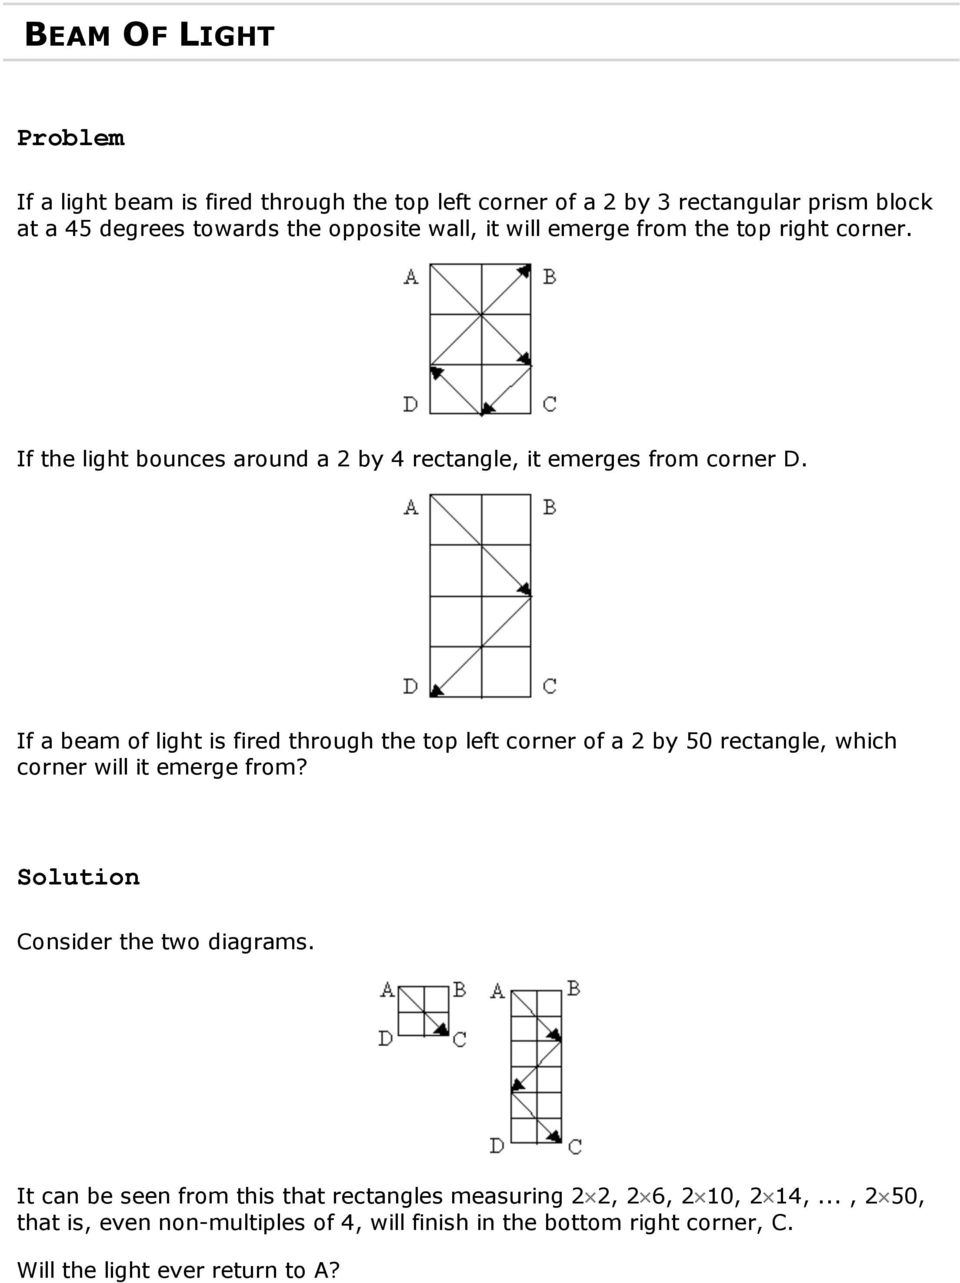 If a beam of light is fired through the top left corner of a 2 by 50 rectangle, which corner will it emerge from? Consider the two diagrams.